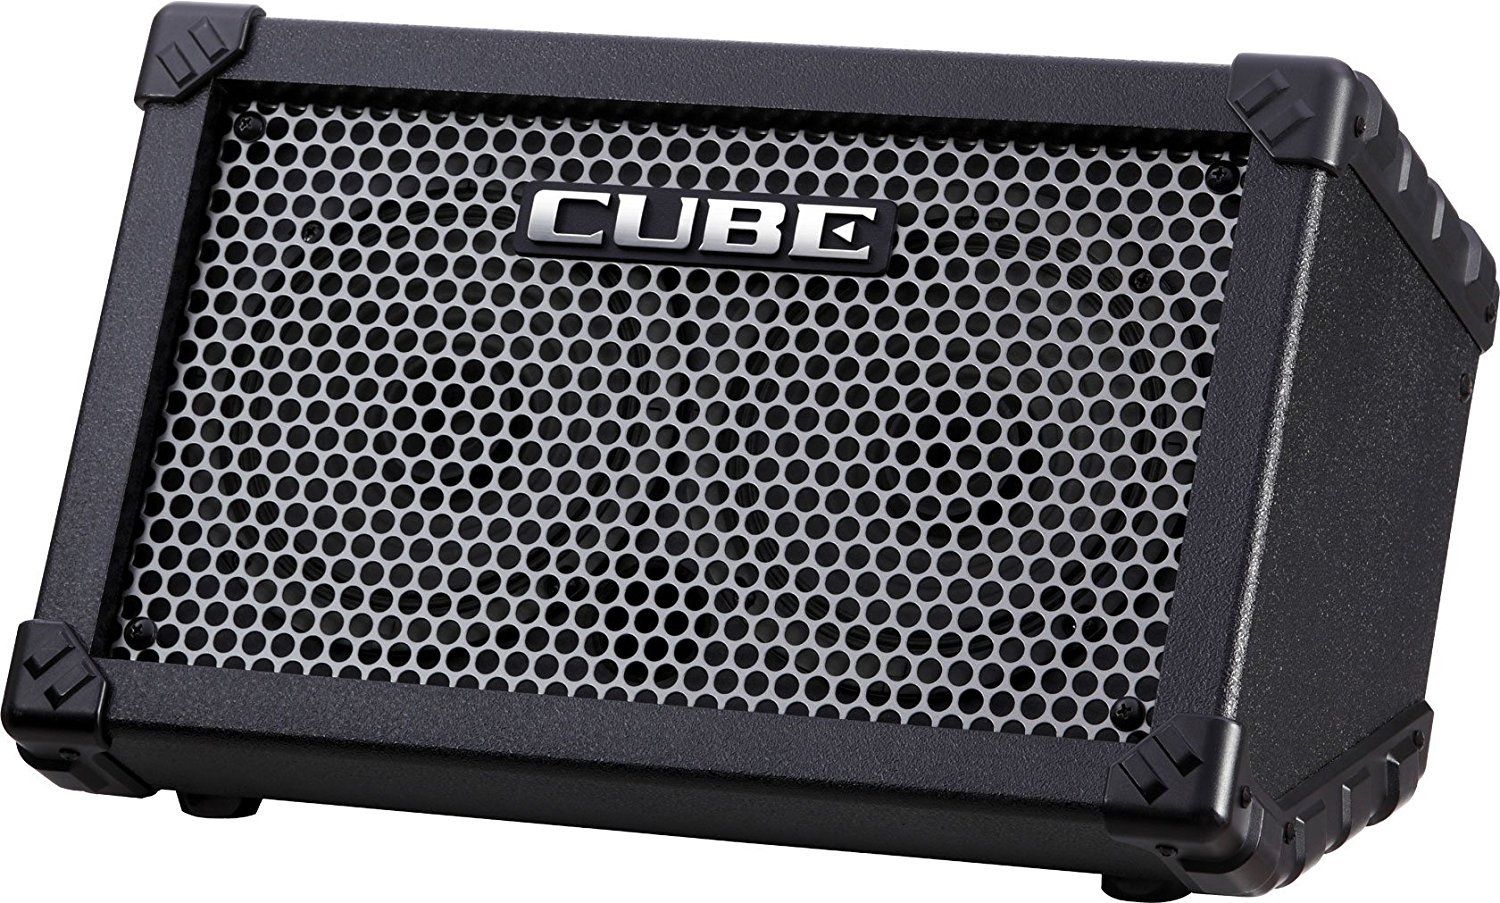 Roland CUBE-ST Cube Street Battery-powered Guitar Combo Amplifier Black with 1 Year Free Extended Warranty by Roland